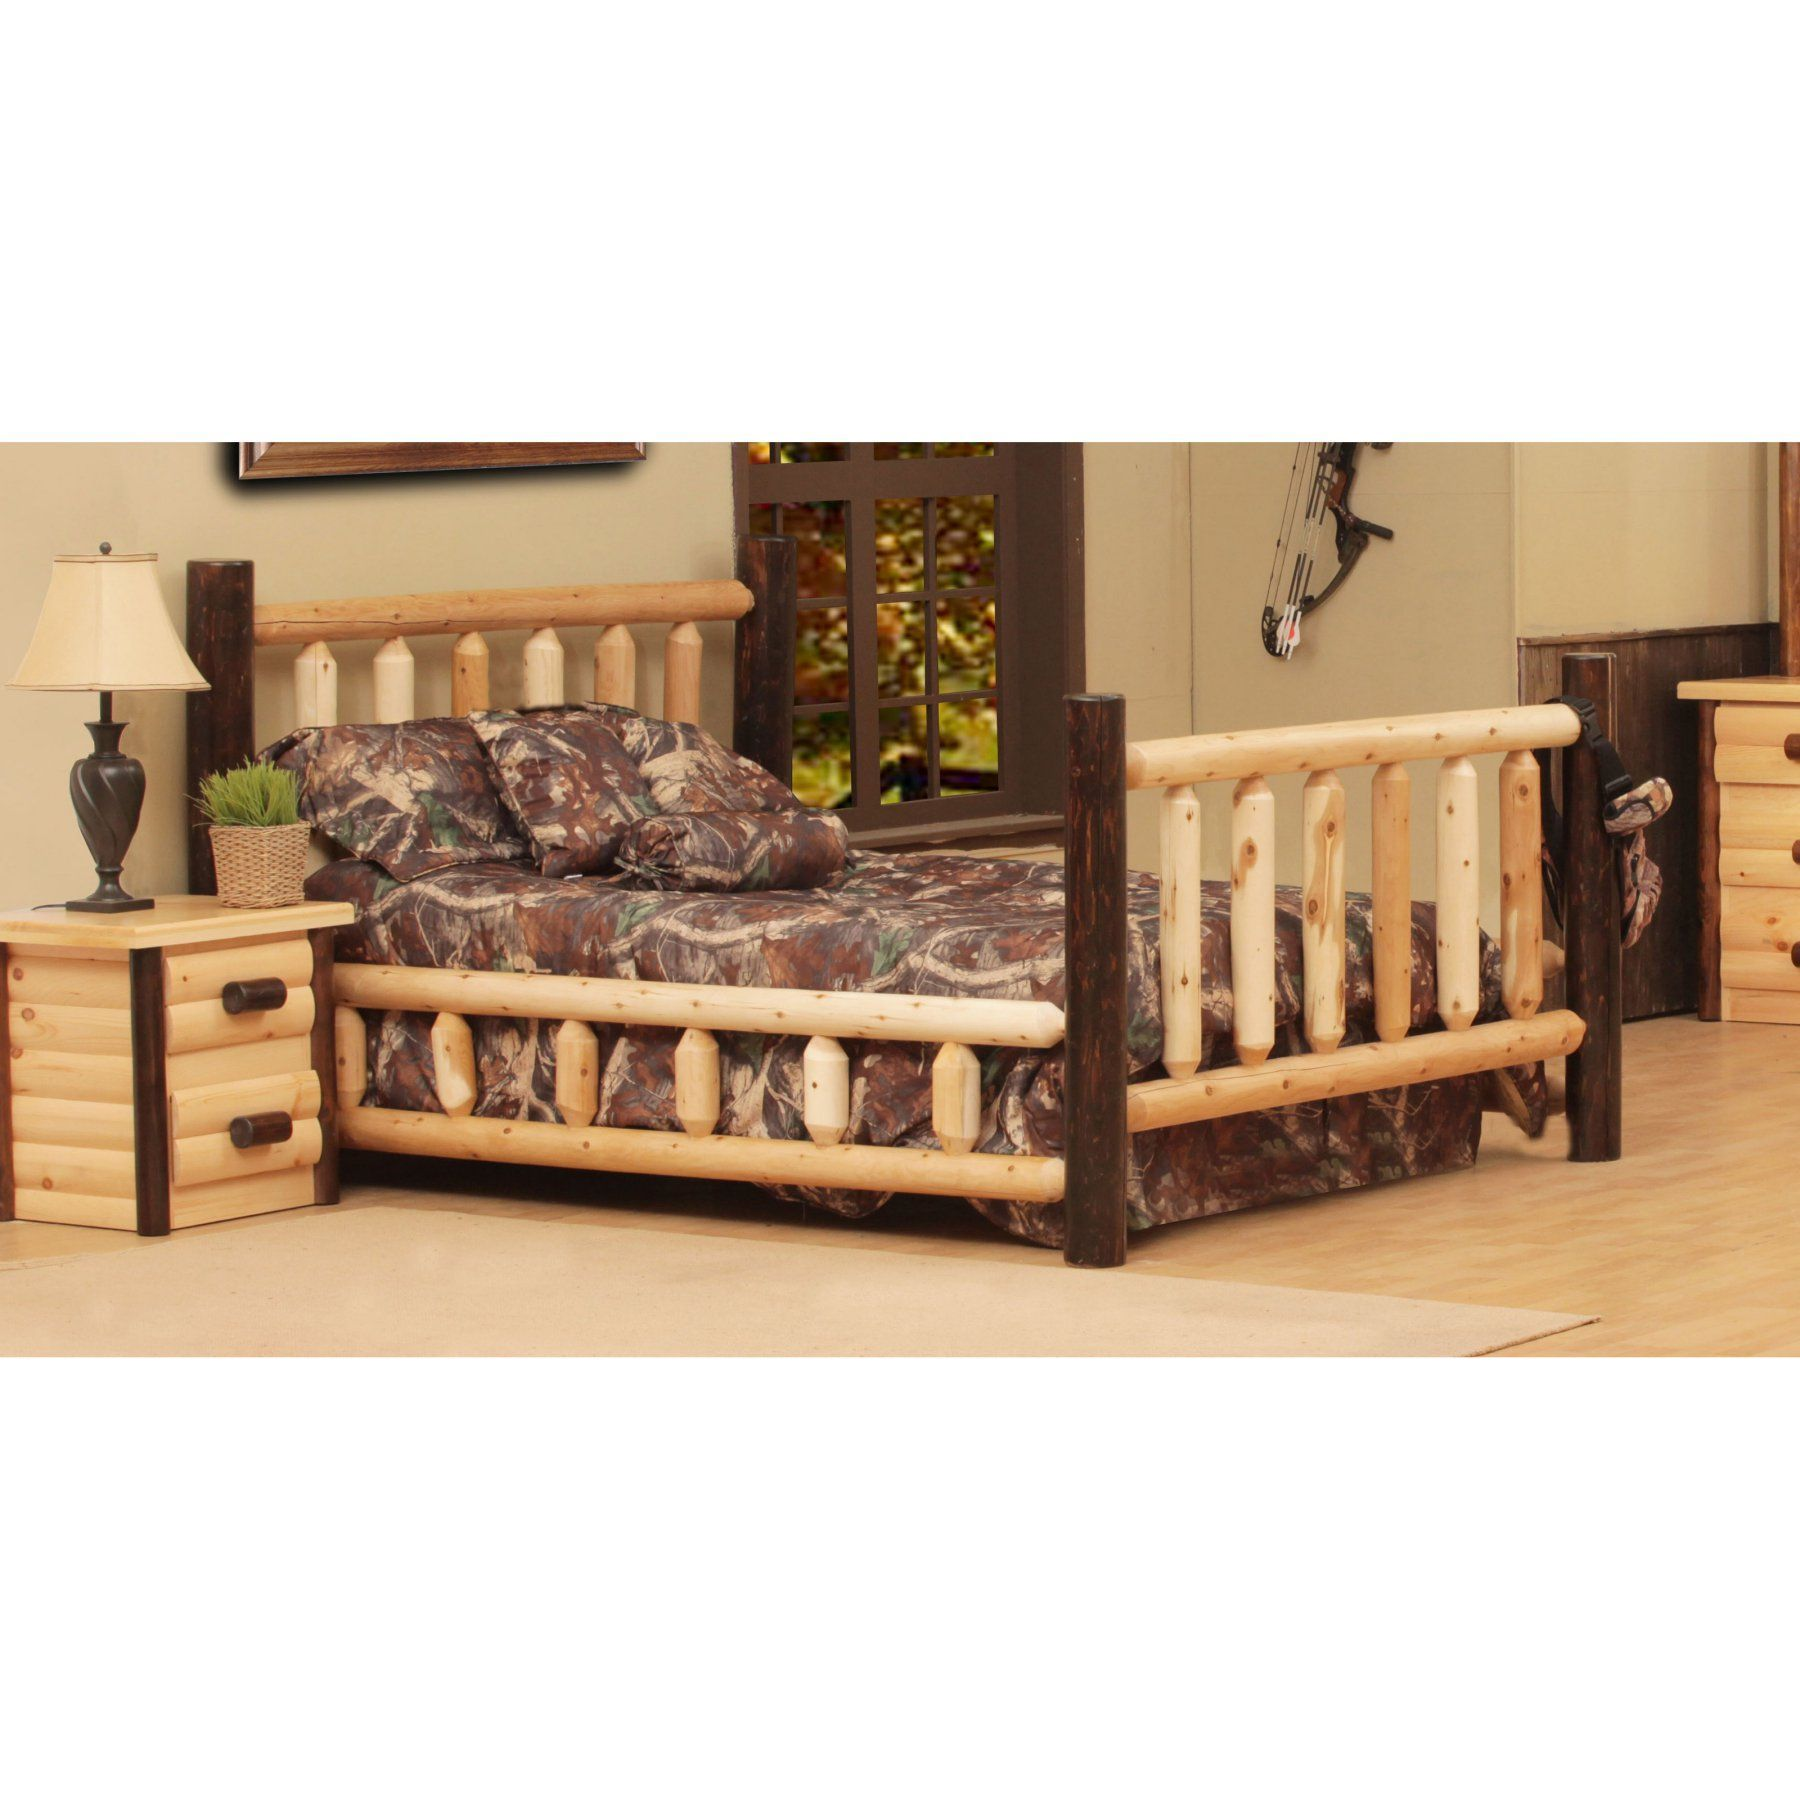 Chelsea Home Furniture Chester Twin Bed - 85200-B-N-3